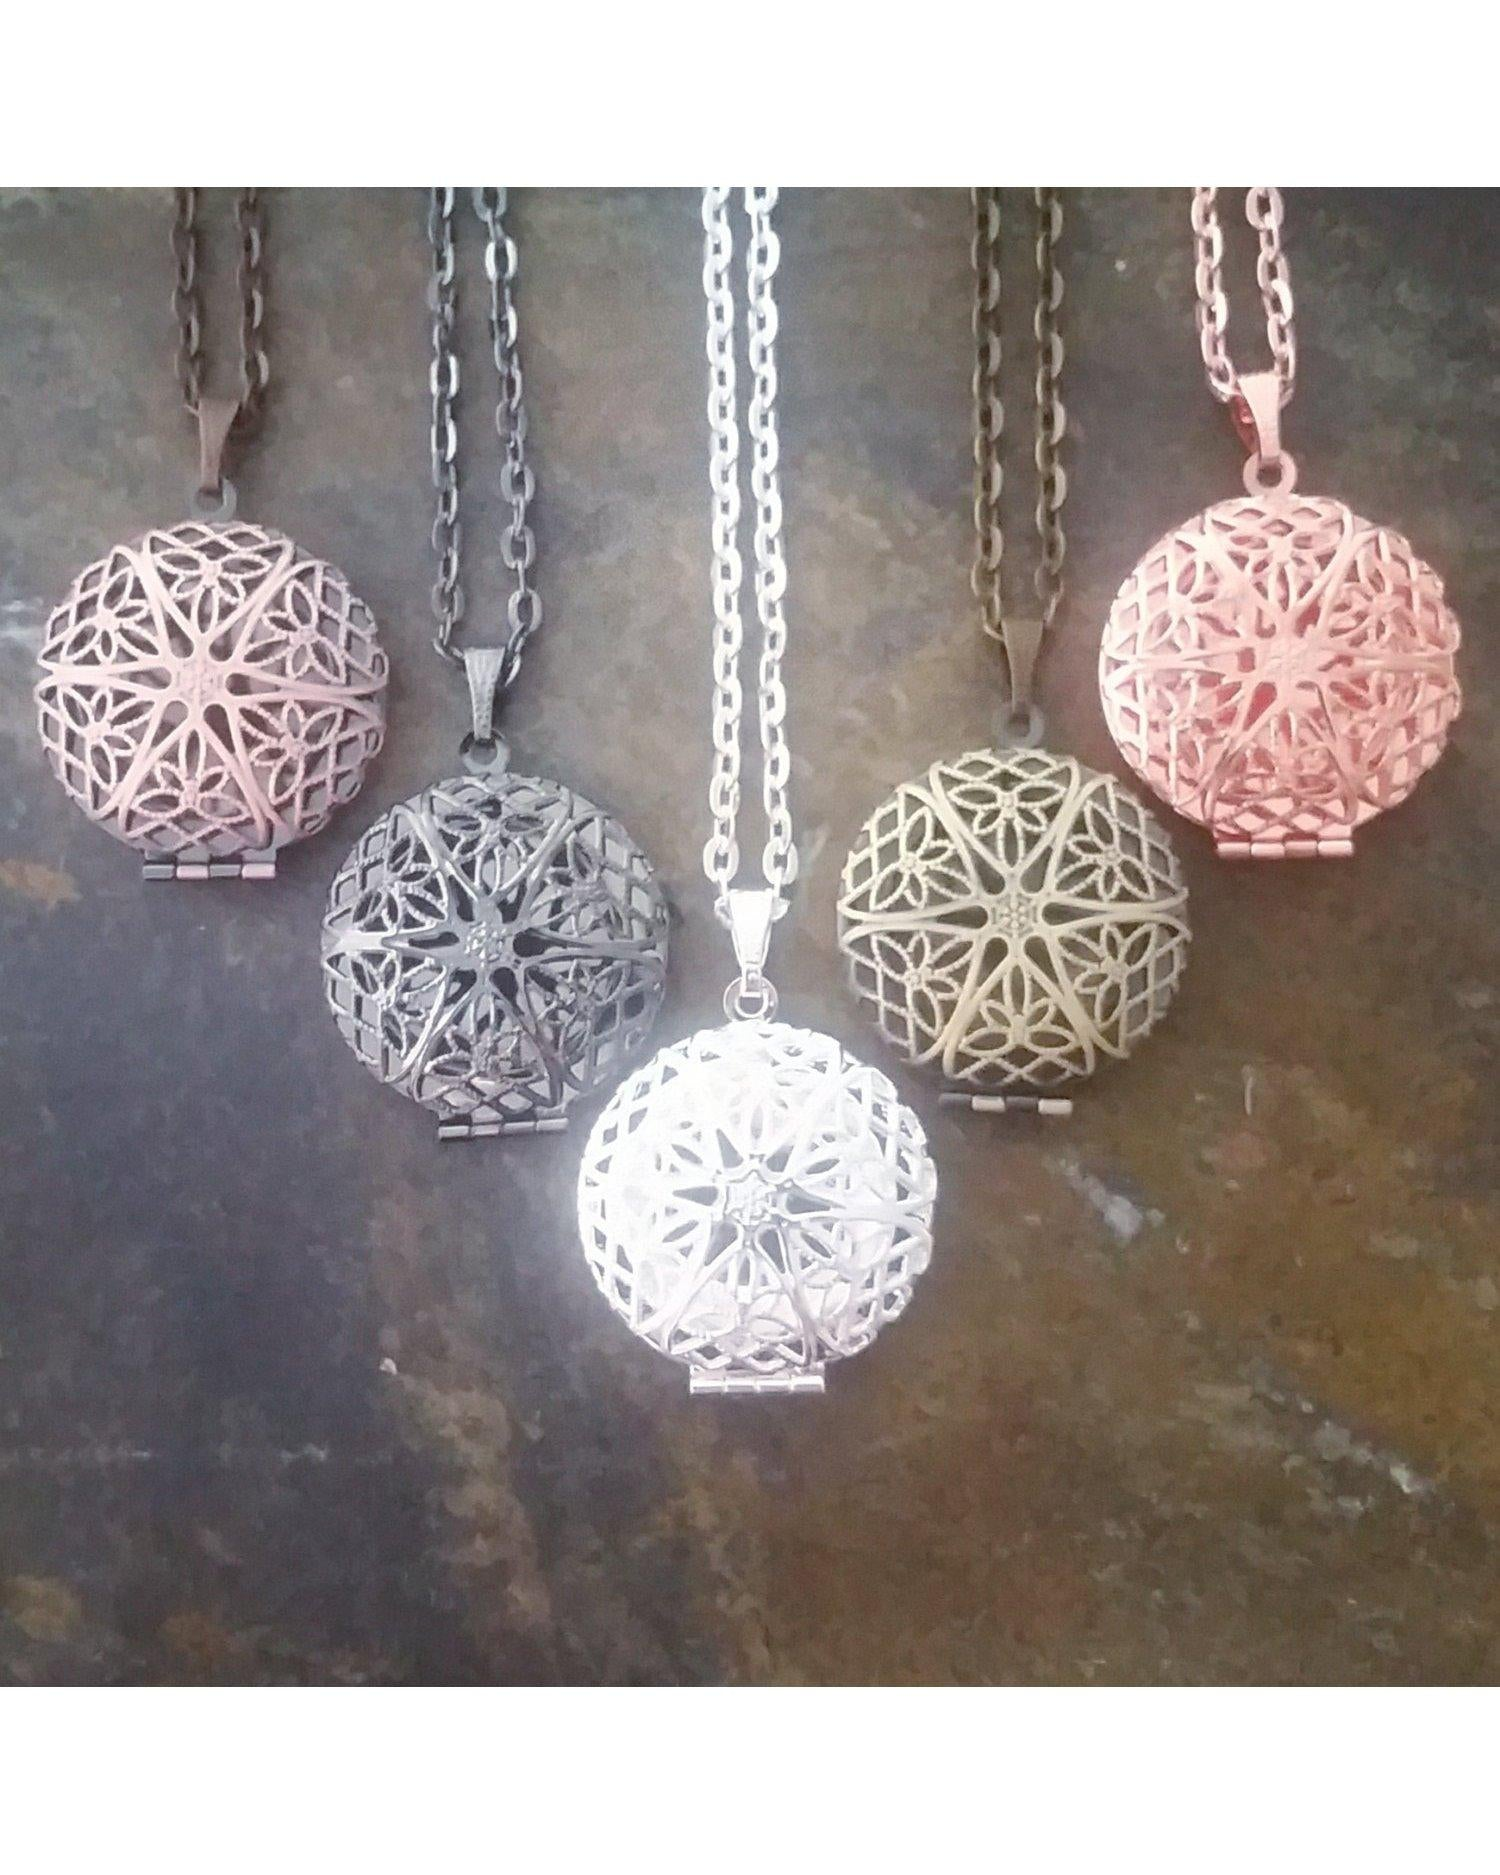 Mixed Colors Sunburst Round Distributor Bulk Wholesale Five (5) Piece Locket Pendant Essential Oil Aromatherapy Diffuser Necklaces B096 - Essentially Elegant